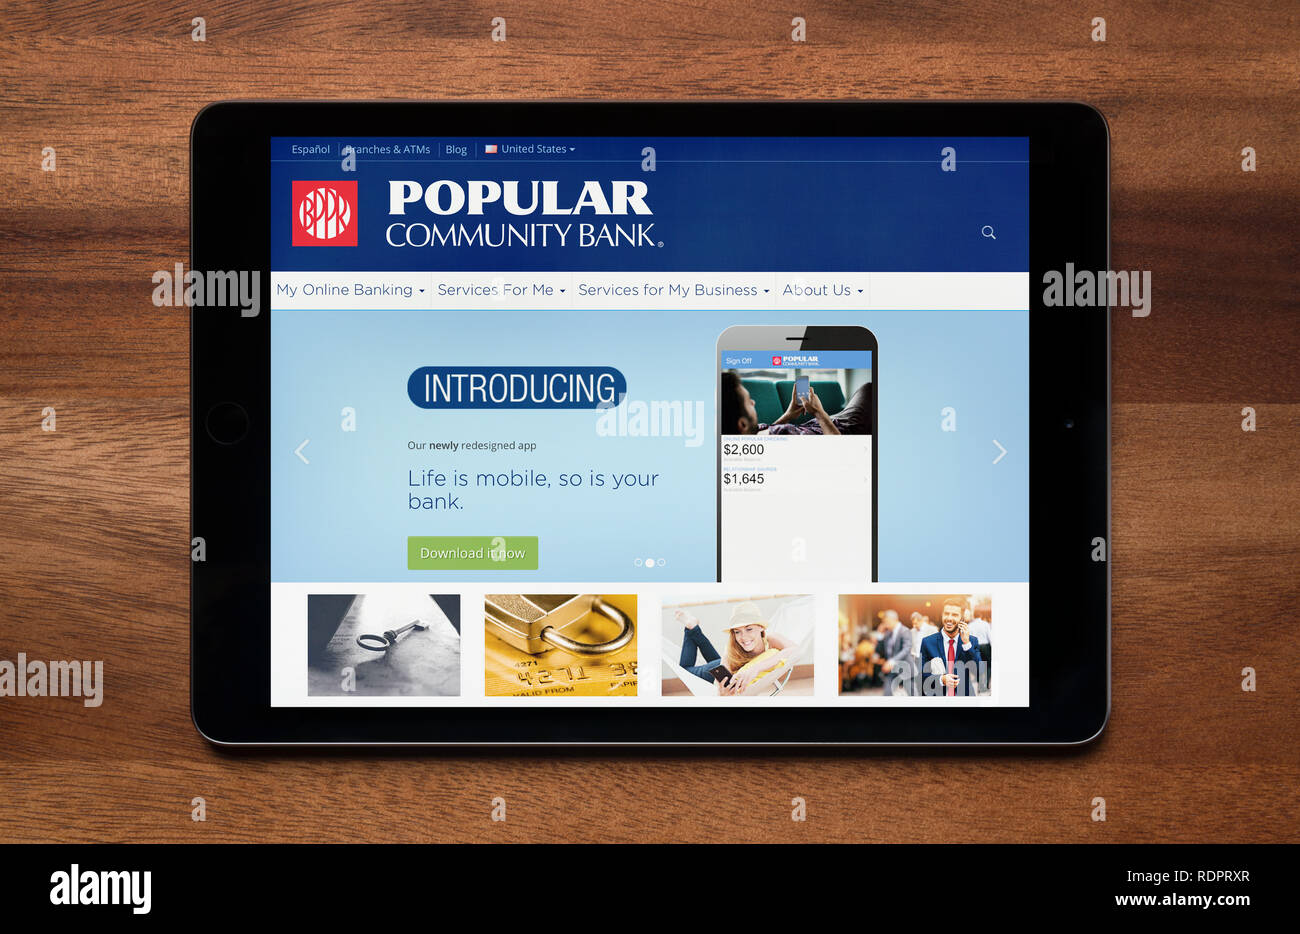 The website of Popular Bank is seen on an iPad tablet, which is resting on a wooden table (Editorial use only). - Stock Image